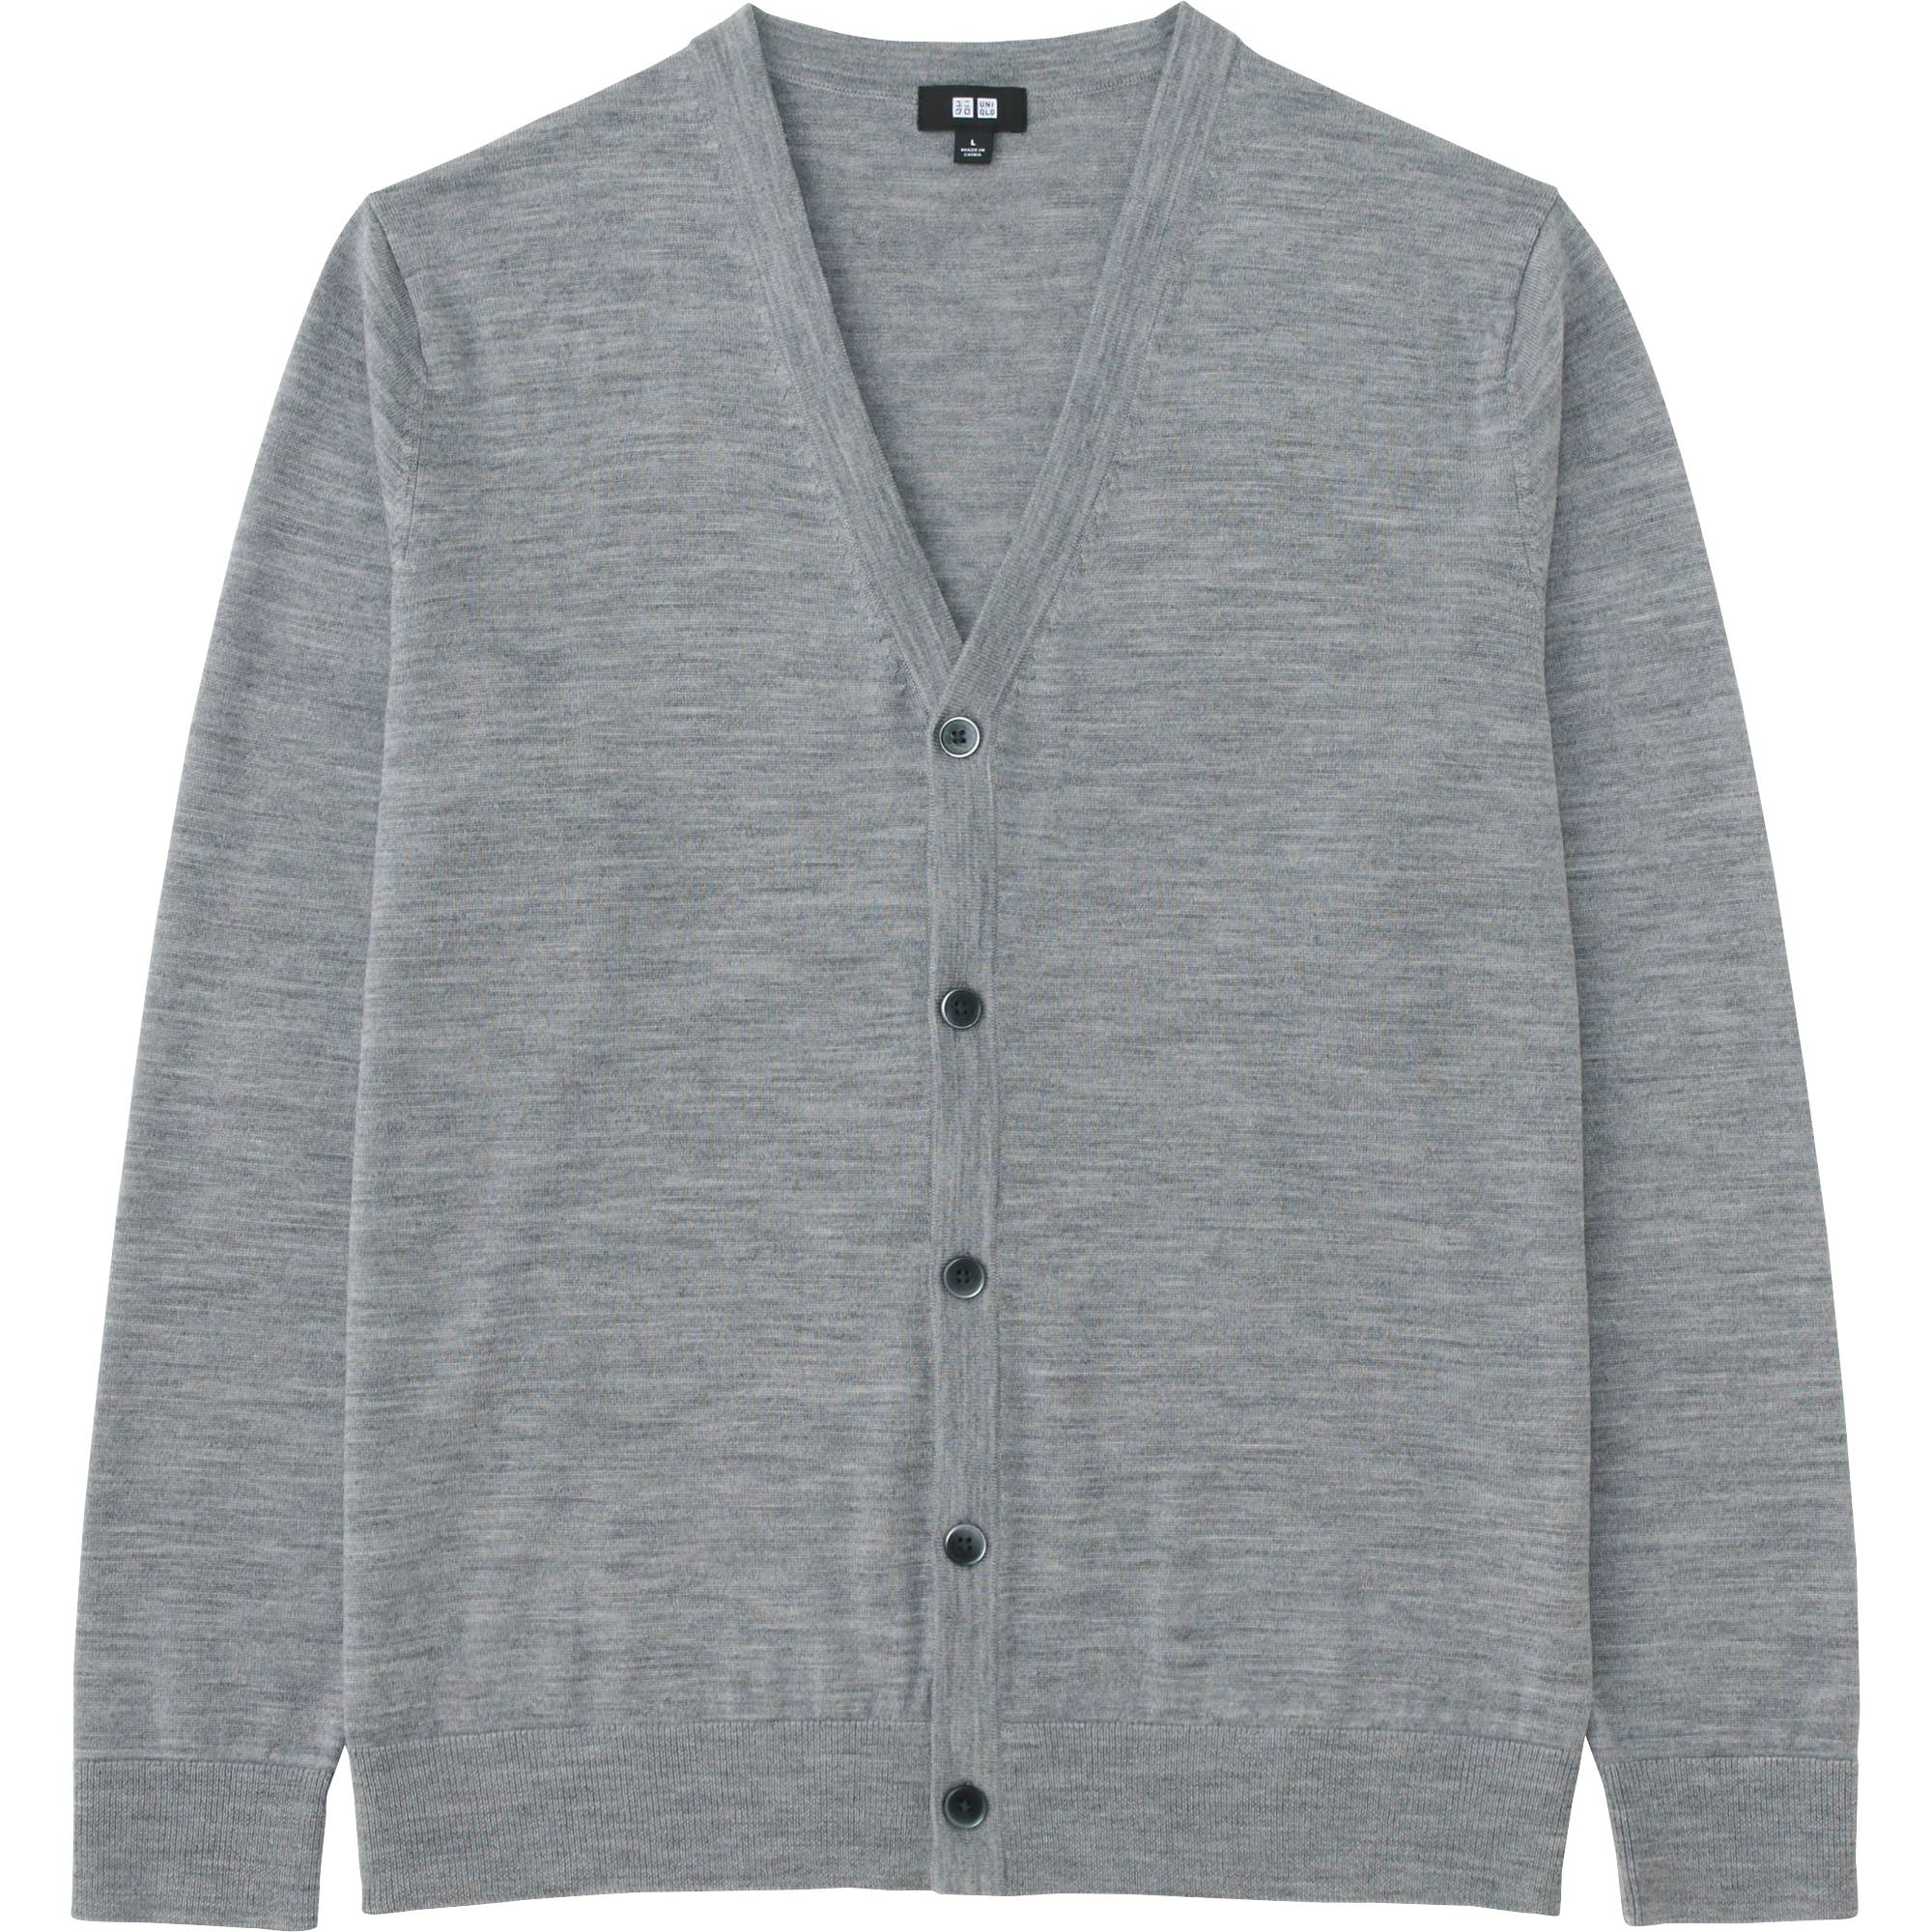 MEN EXTRA FINE MERINO V-NECK CARDIGAN | UNIQLO US